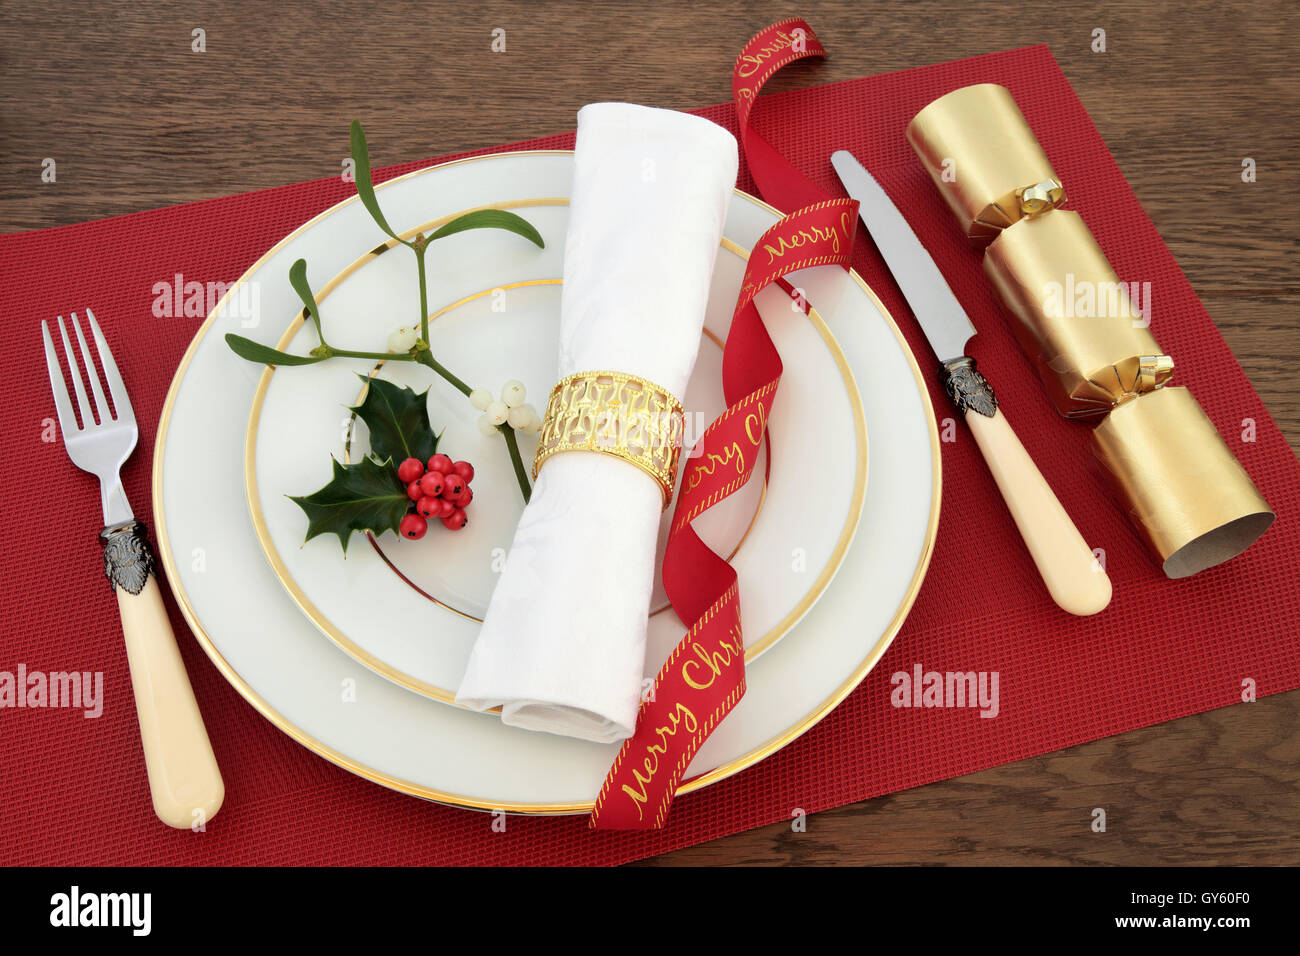 Christmas dinner table setting with white plates, knife and fork ...